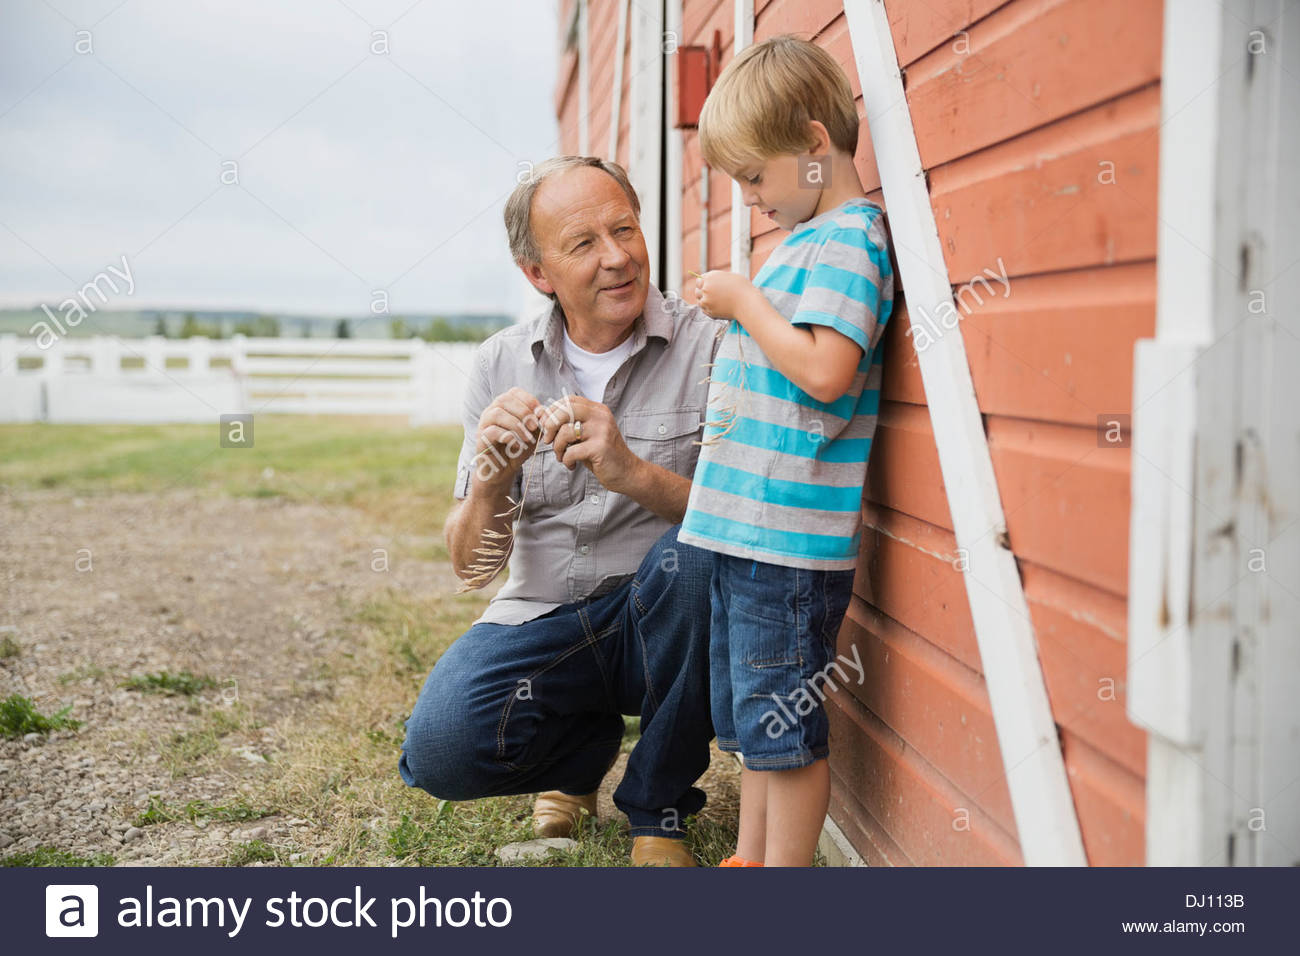 Grandfather and grandson spending time together outdoors - Stock Image